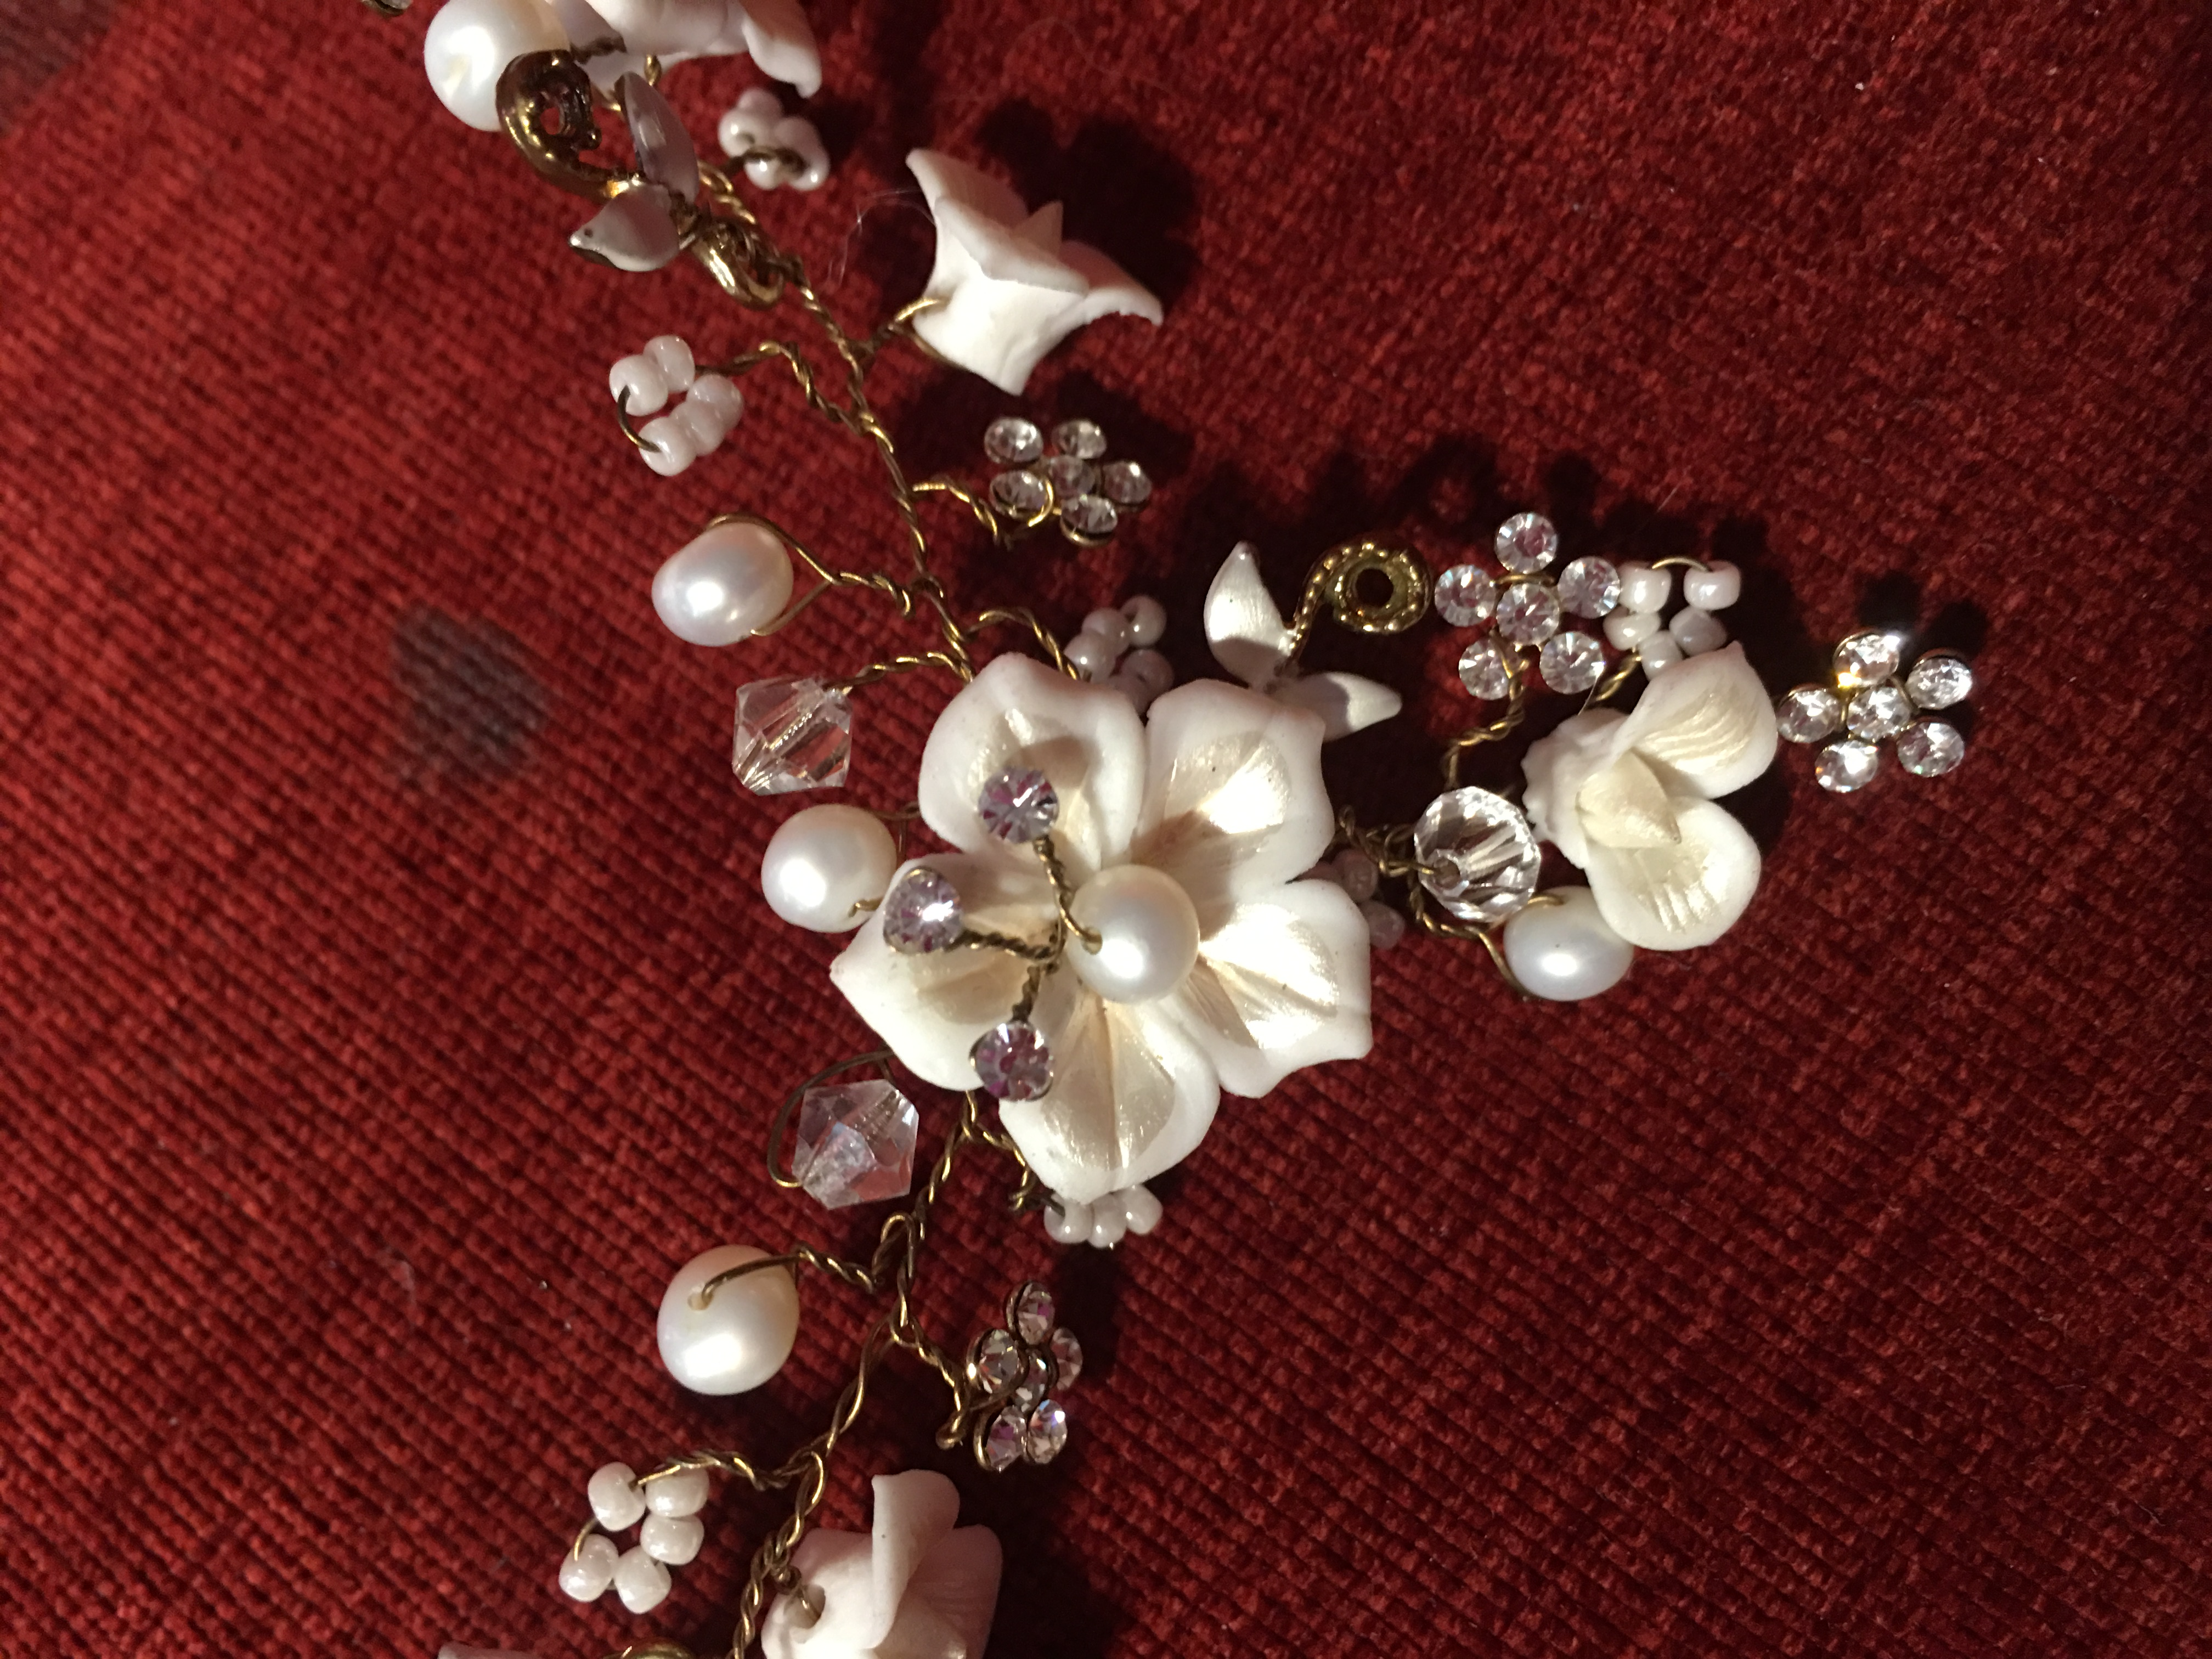 Handcrafted Floral Jewelry